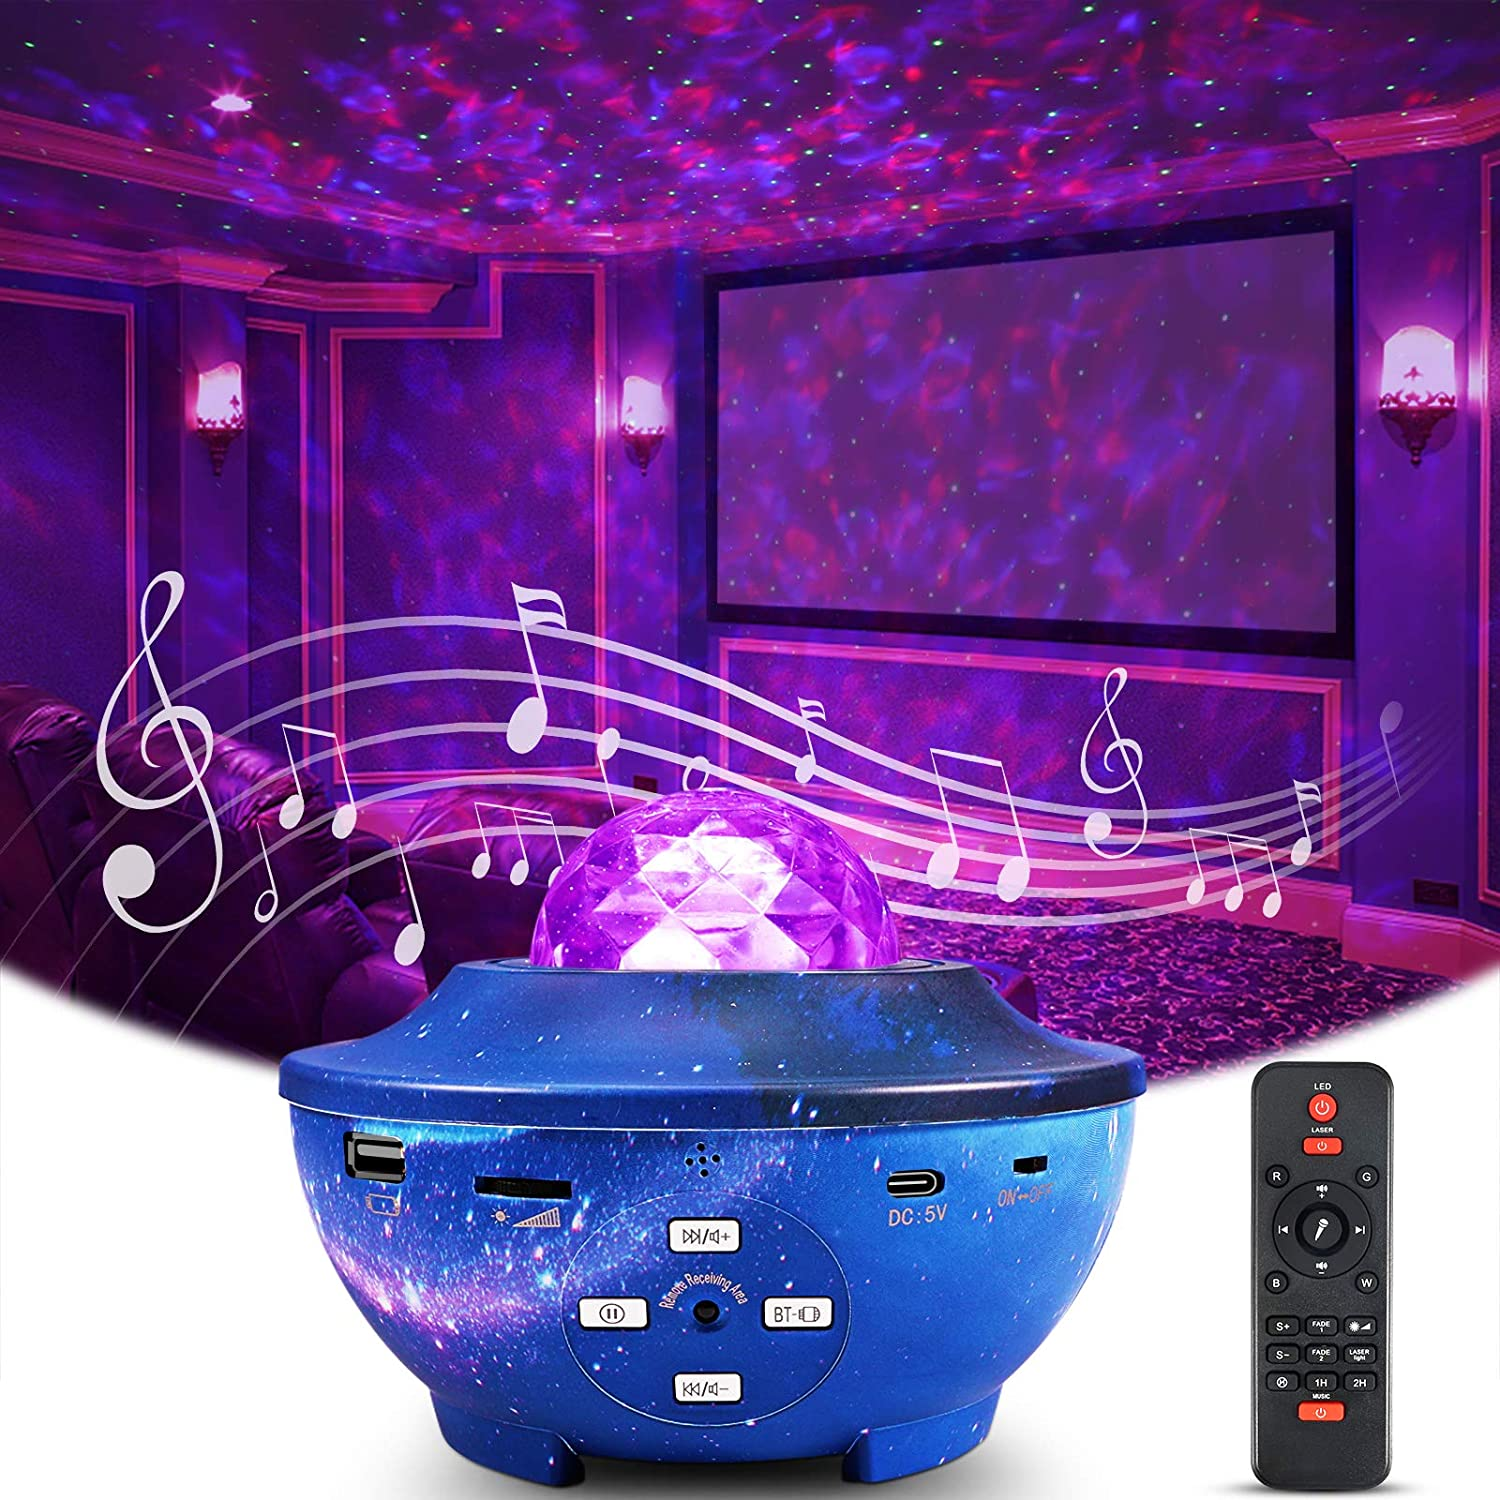 Smart WiFi Star Projector Delicacy Galaxy Projector Ocean Wave Starry Sky Night Light Projector with Music Bluetooth Speaker,Rotating LED Night Light for Home Theatre Kids Adults Room Decoration